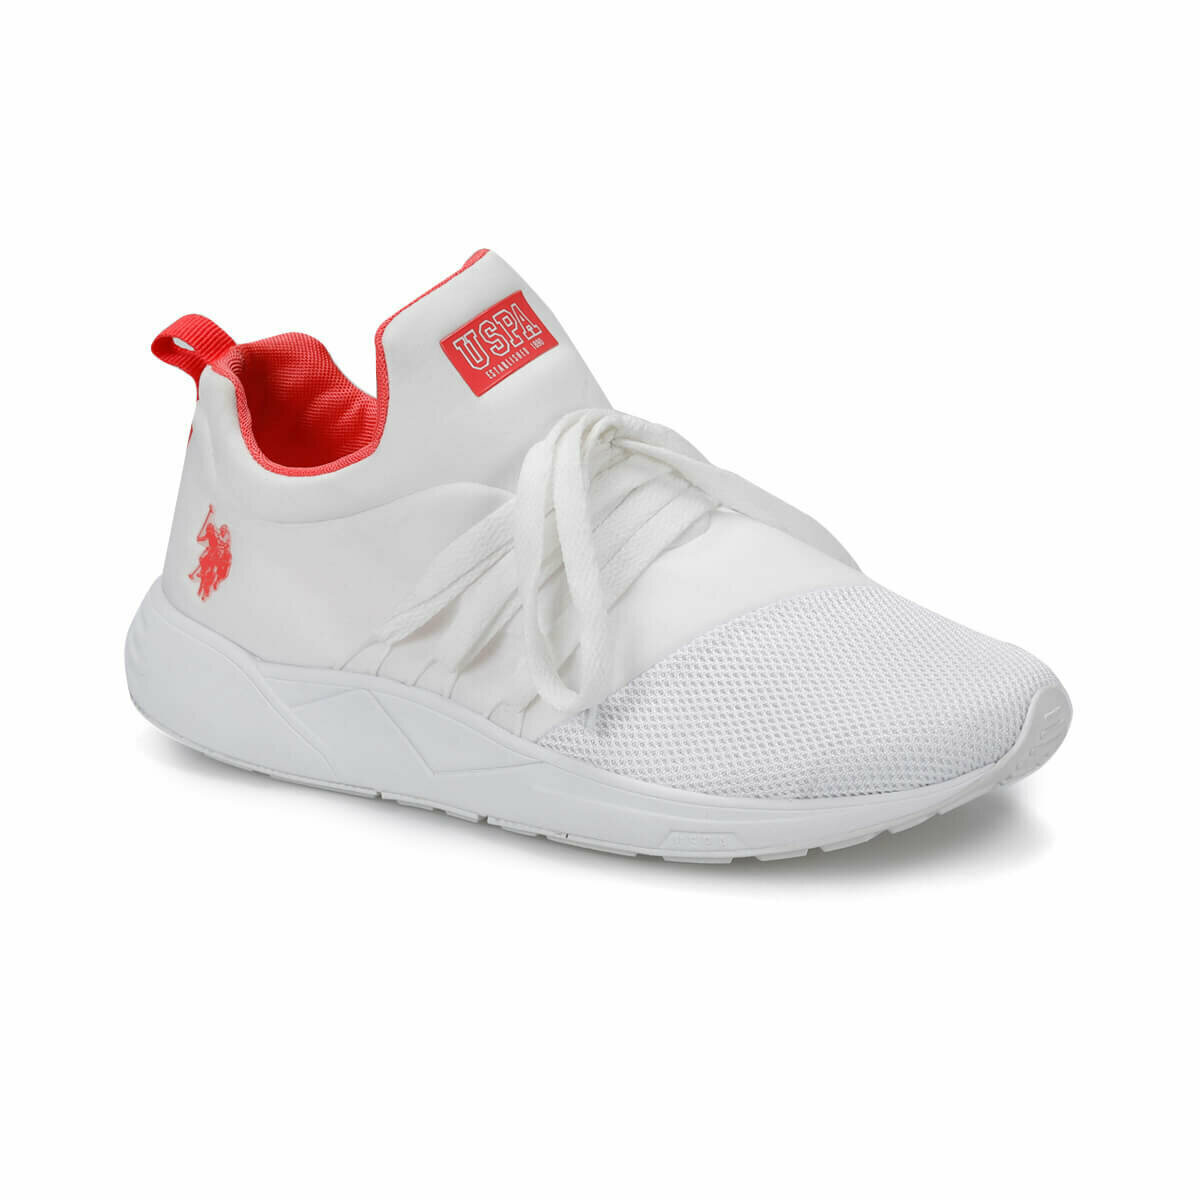 FLO TORK White Women 'S Sneaker Shoes U.S. POLO ASSN.